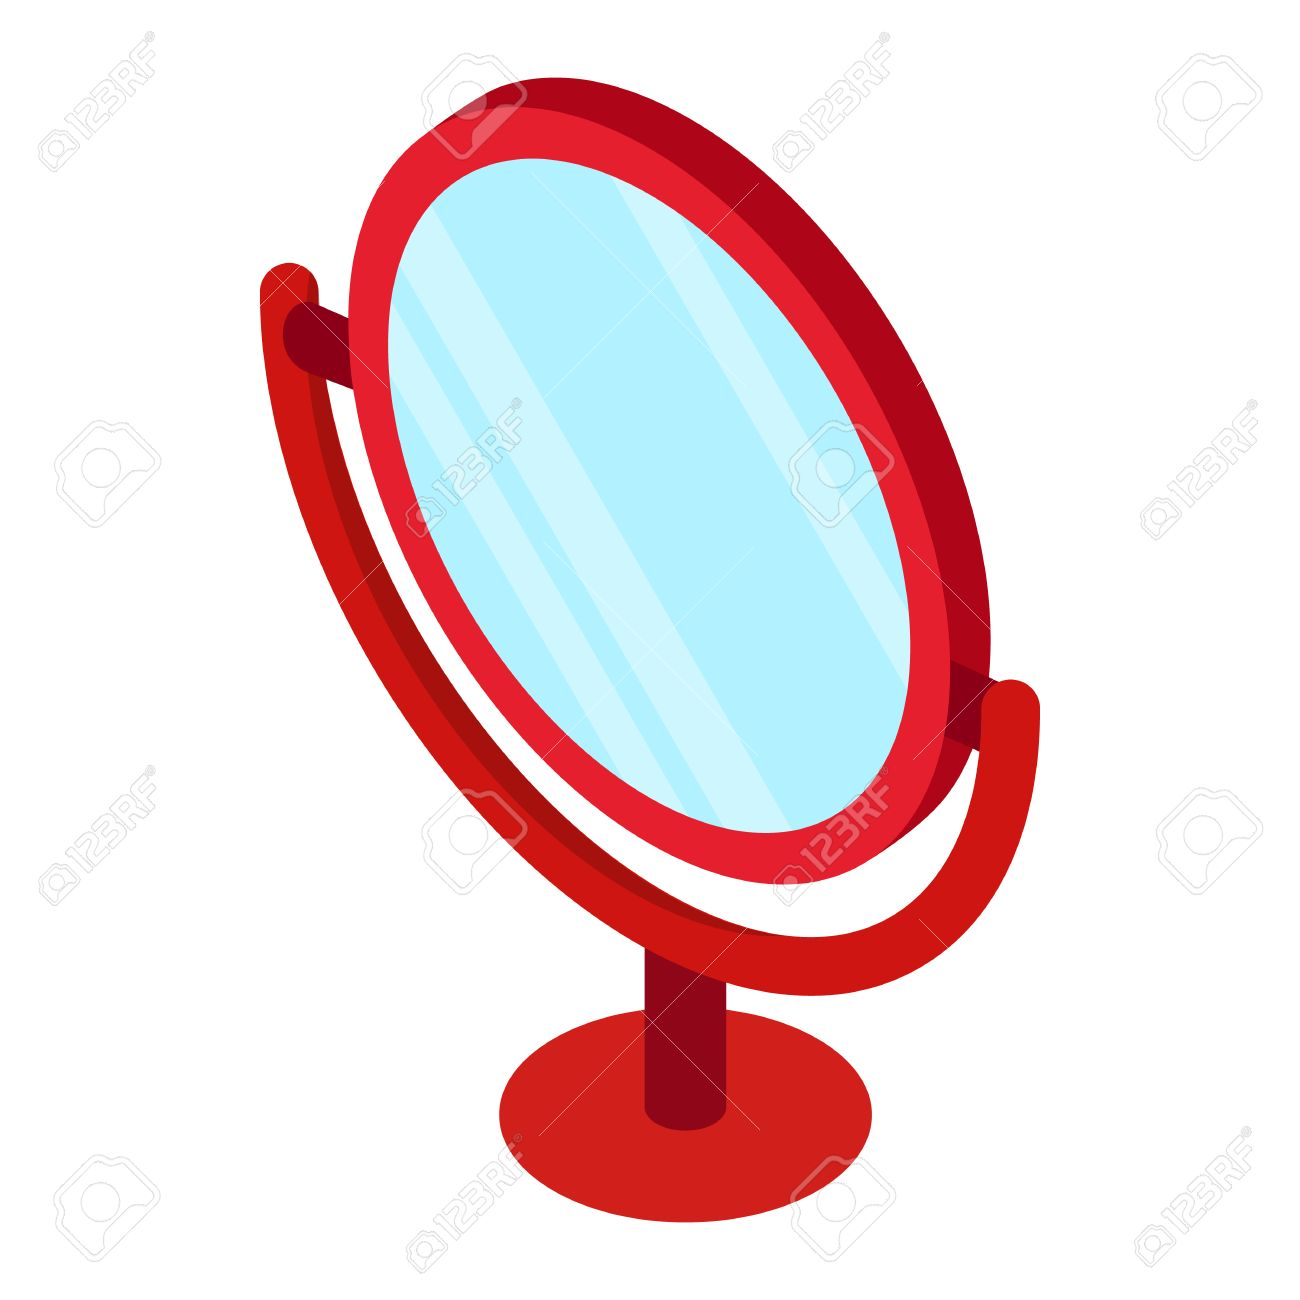 Red Round Table Mirror Icon In Isometric 3d Style Isolated On White  Background Stock Vector